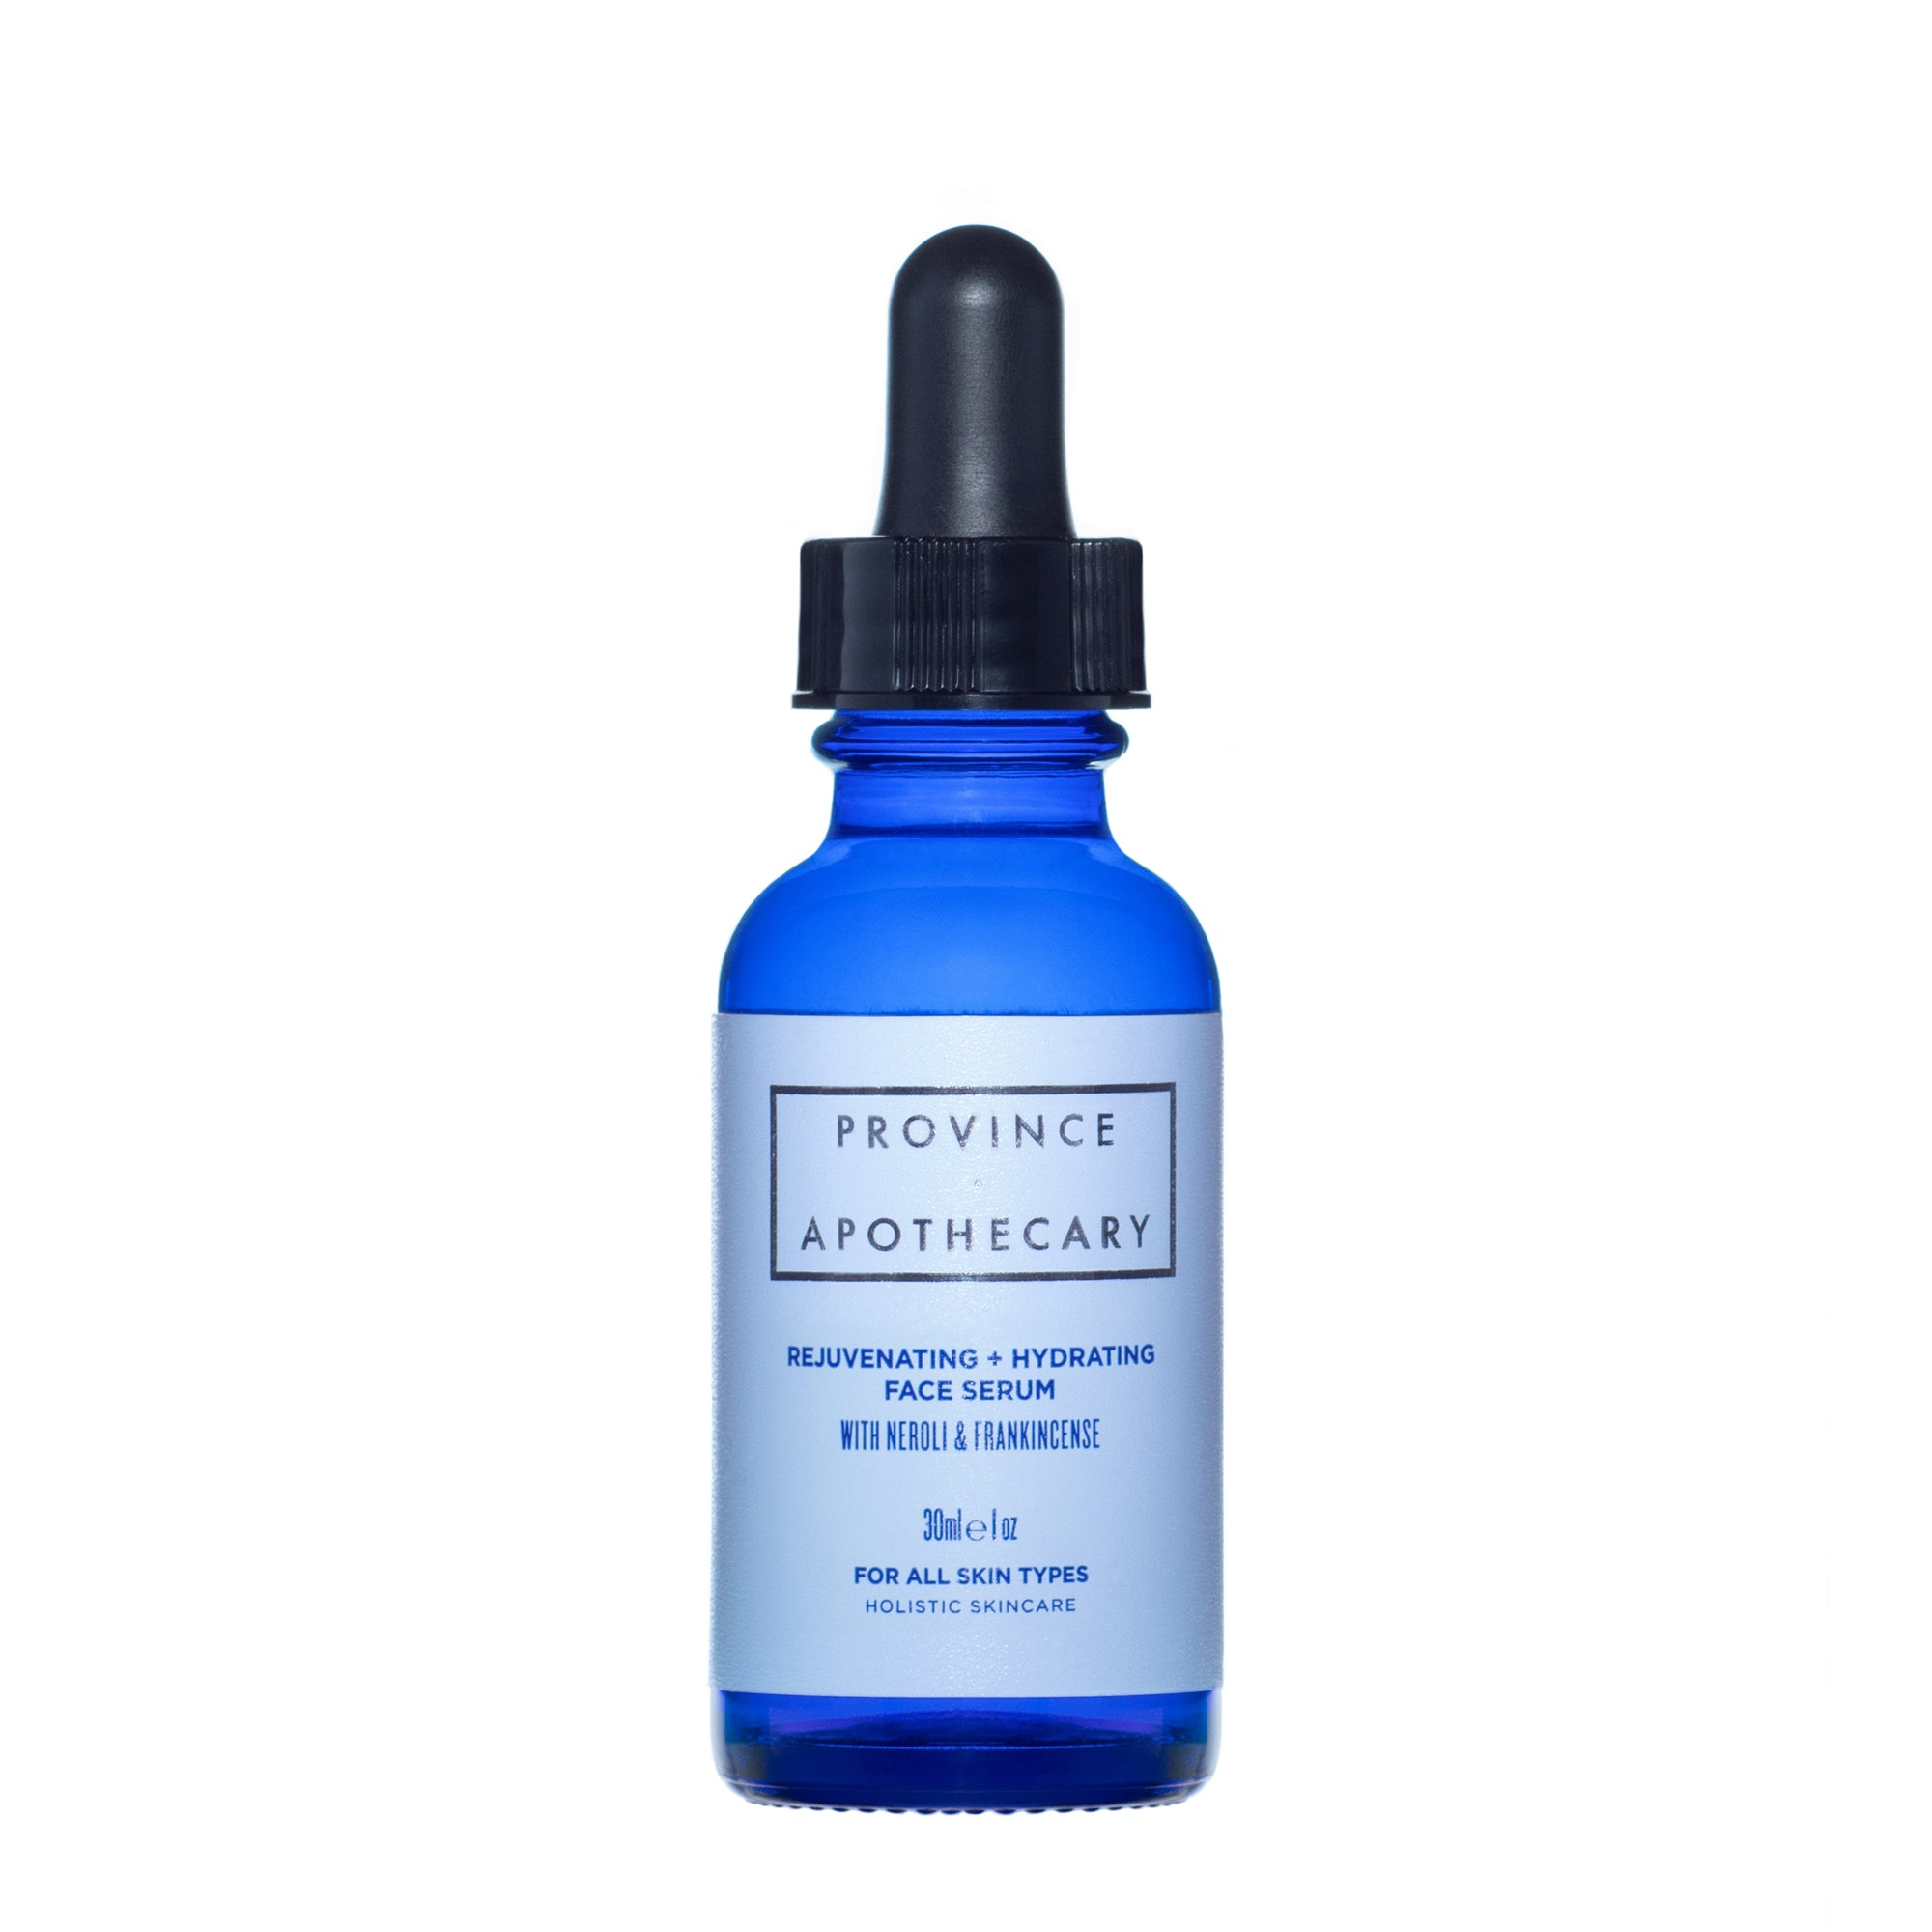 Rejuvenating + Hydrating Face Serum